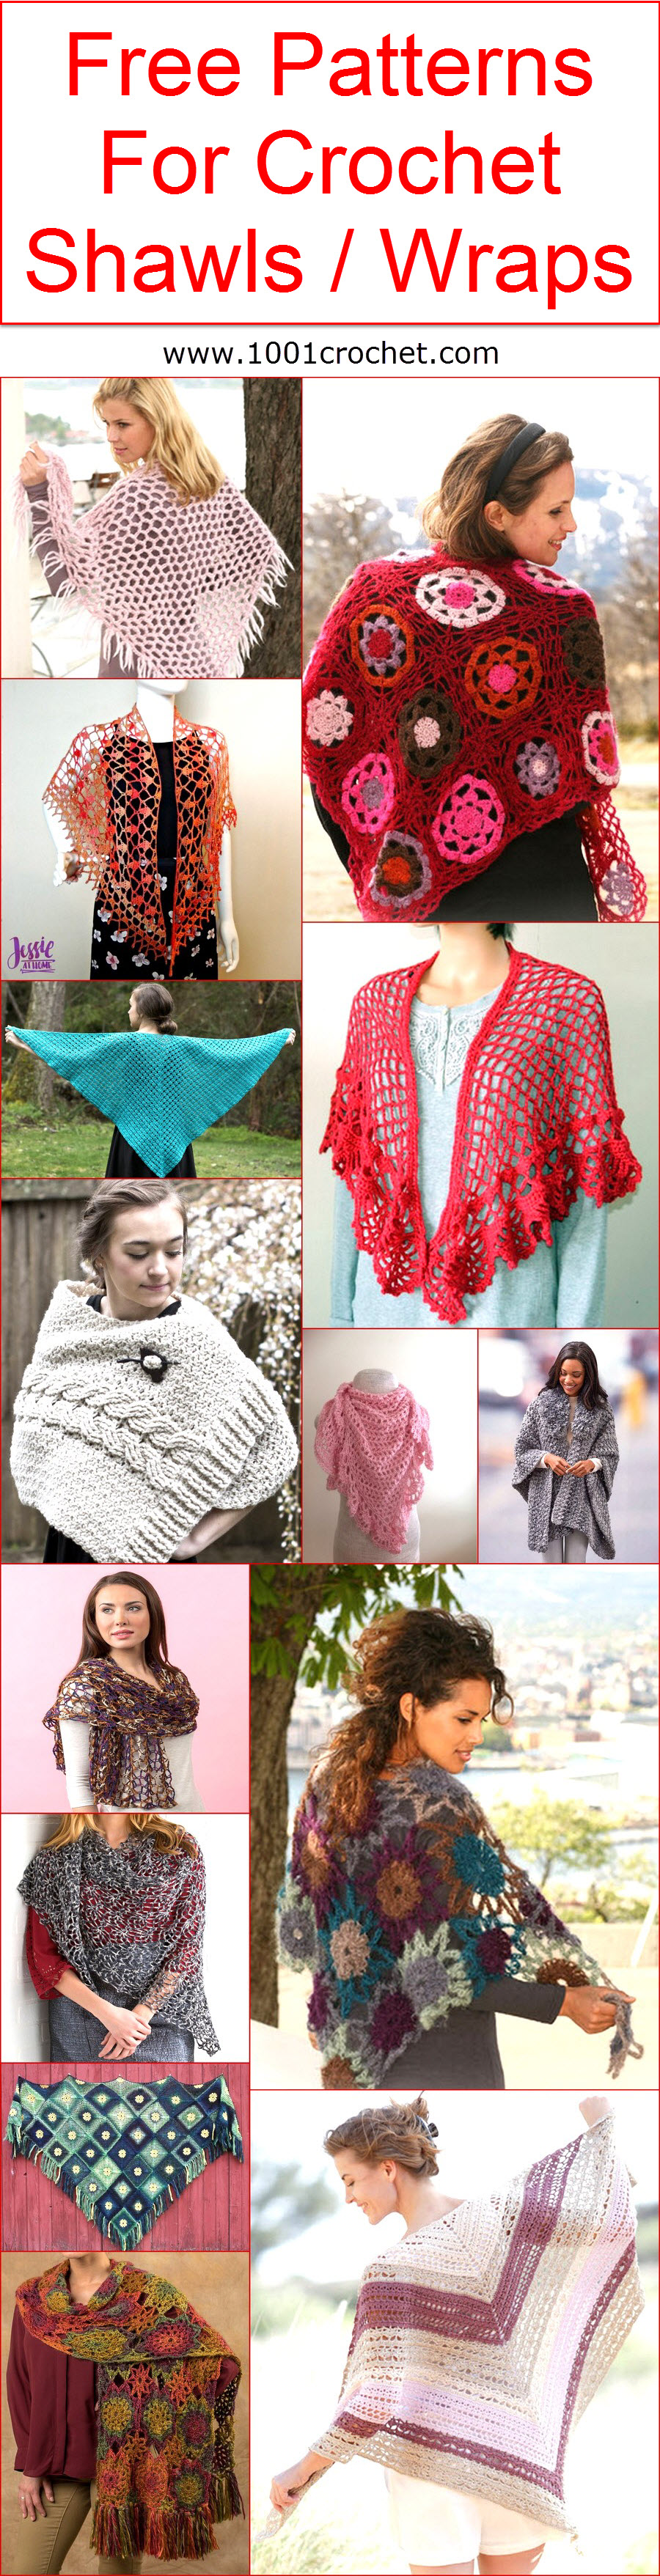 free-patterns-for-crochet-shawls-wraps